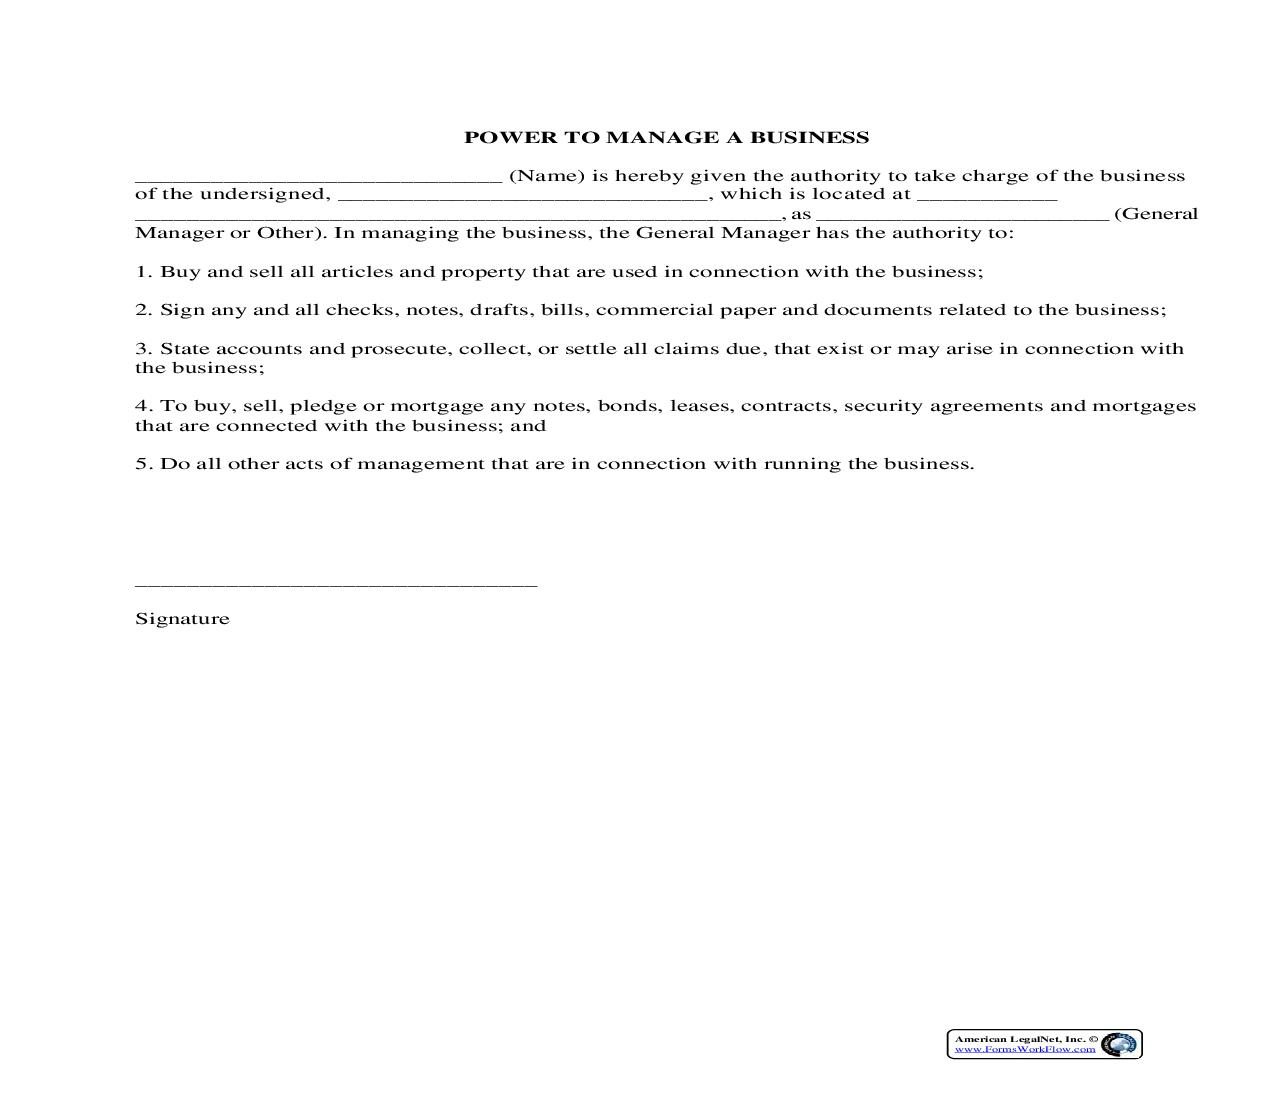 Power To Manage A Business {BUS-107}   Pdf Fpdf Docx   Legal Forms